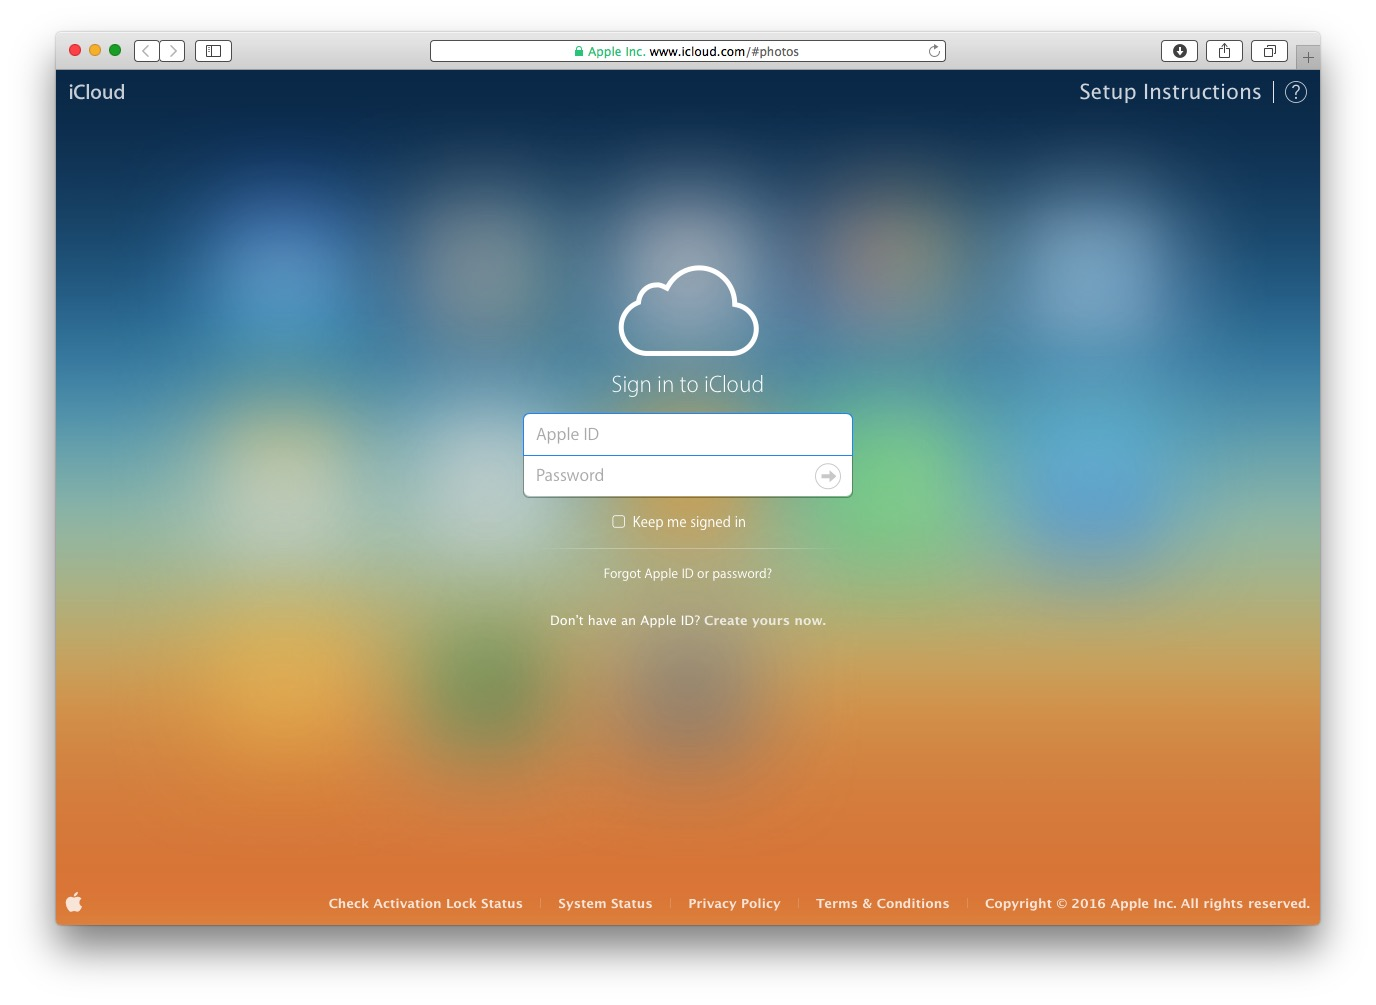 Login to the iCloud website